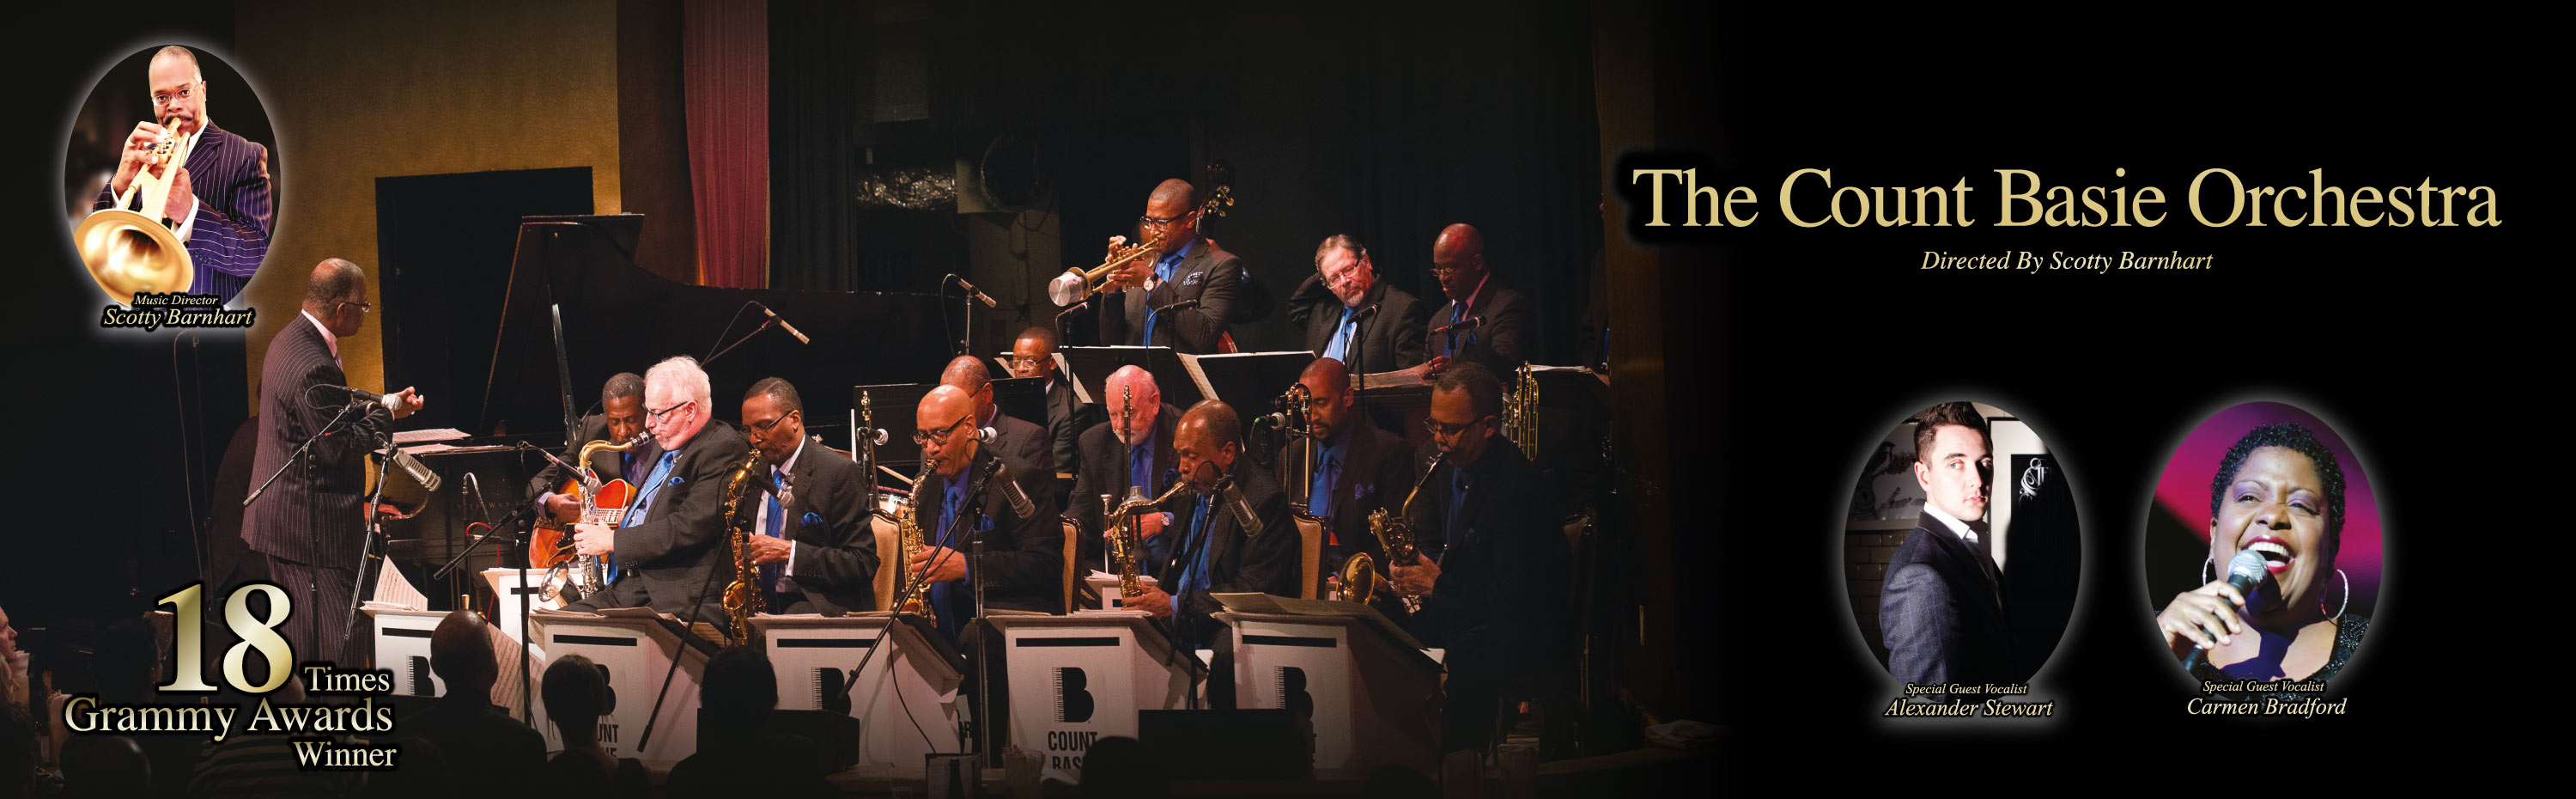 The Count Basie Orchestra Macau